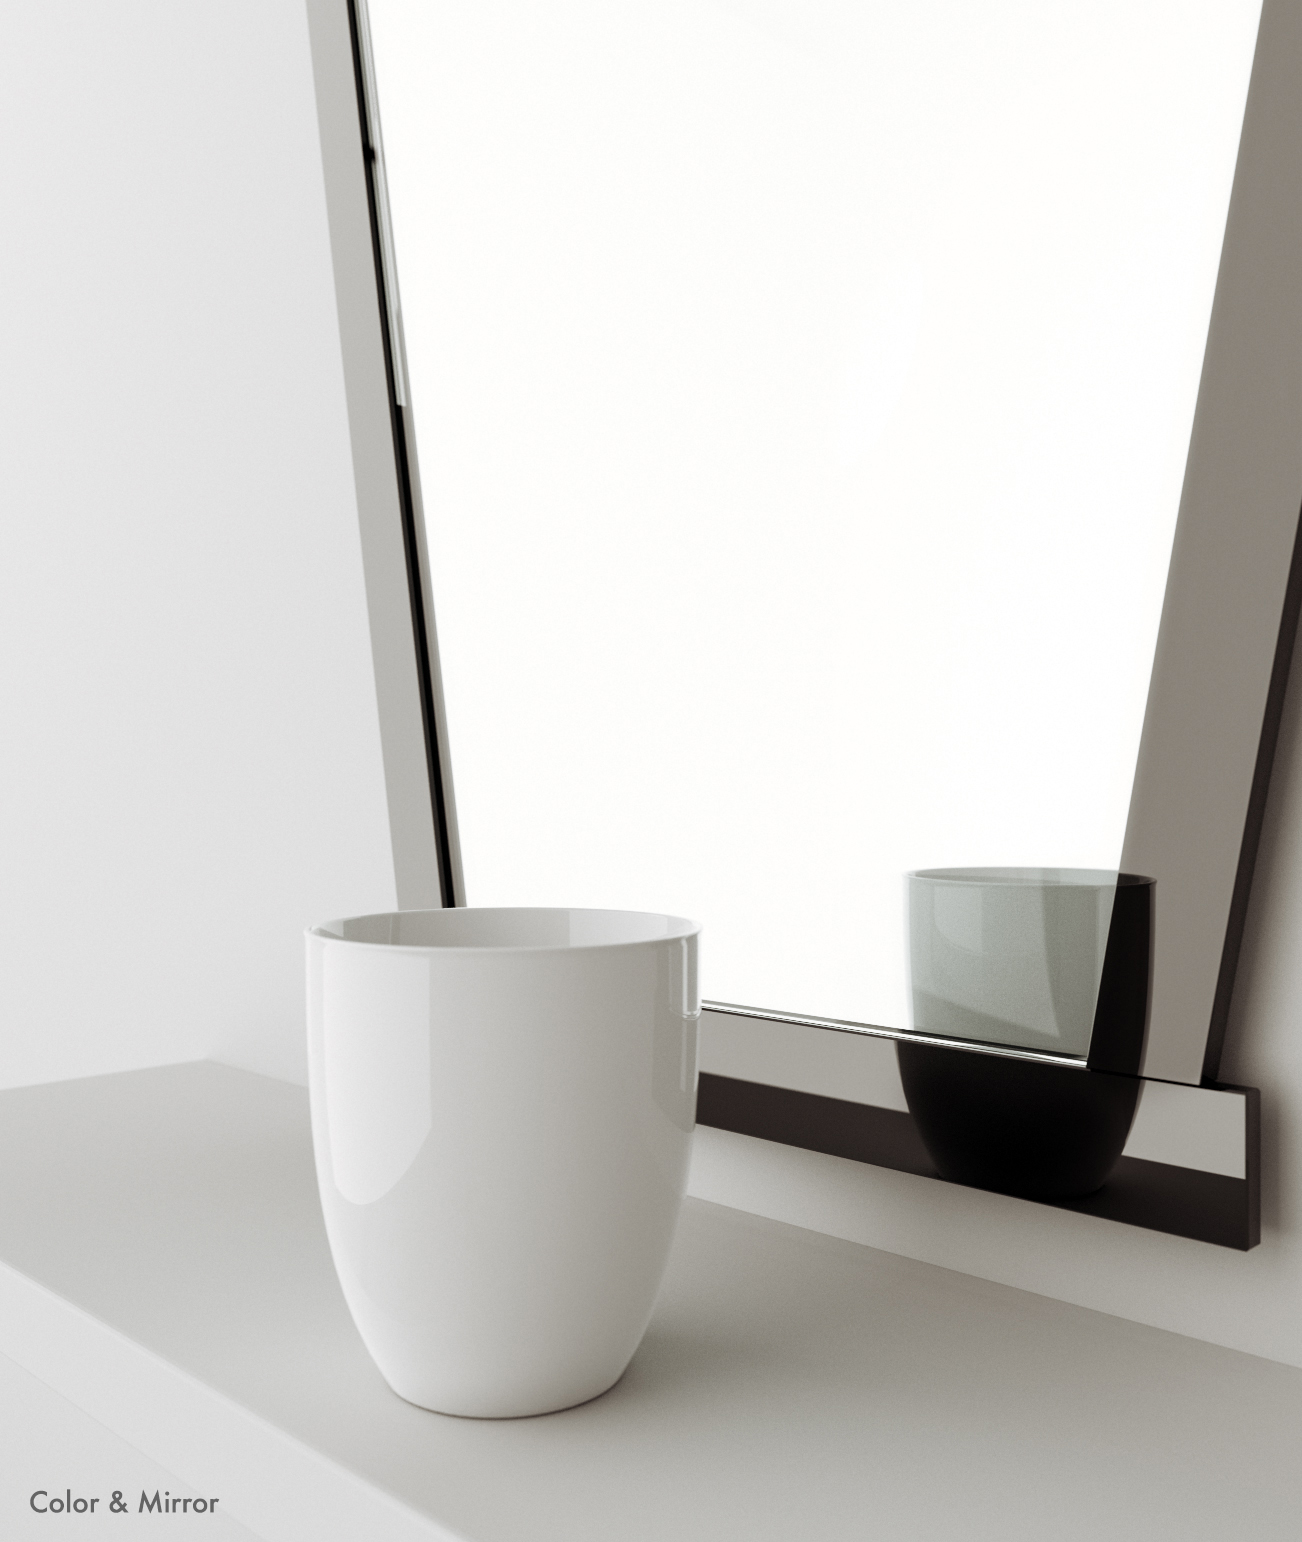 Side view of mirror.